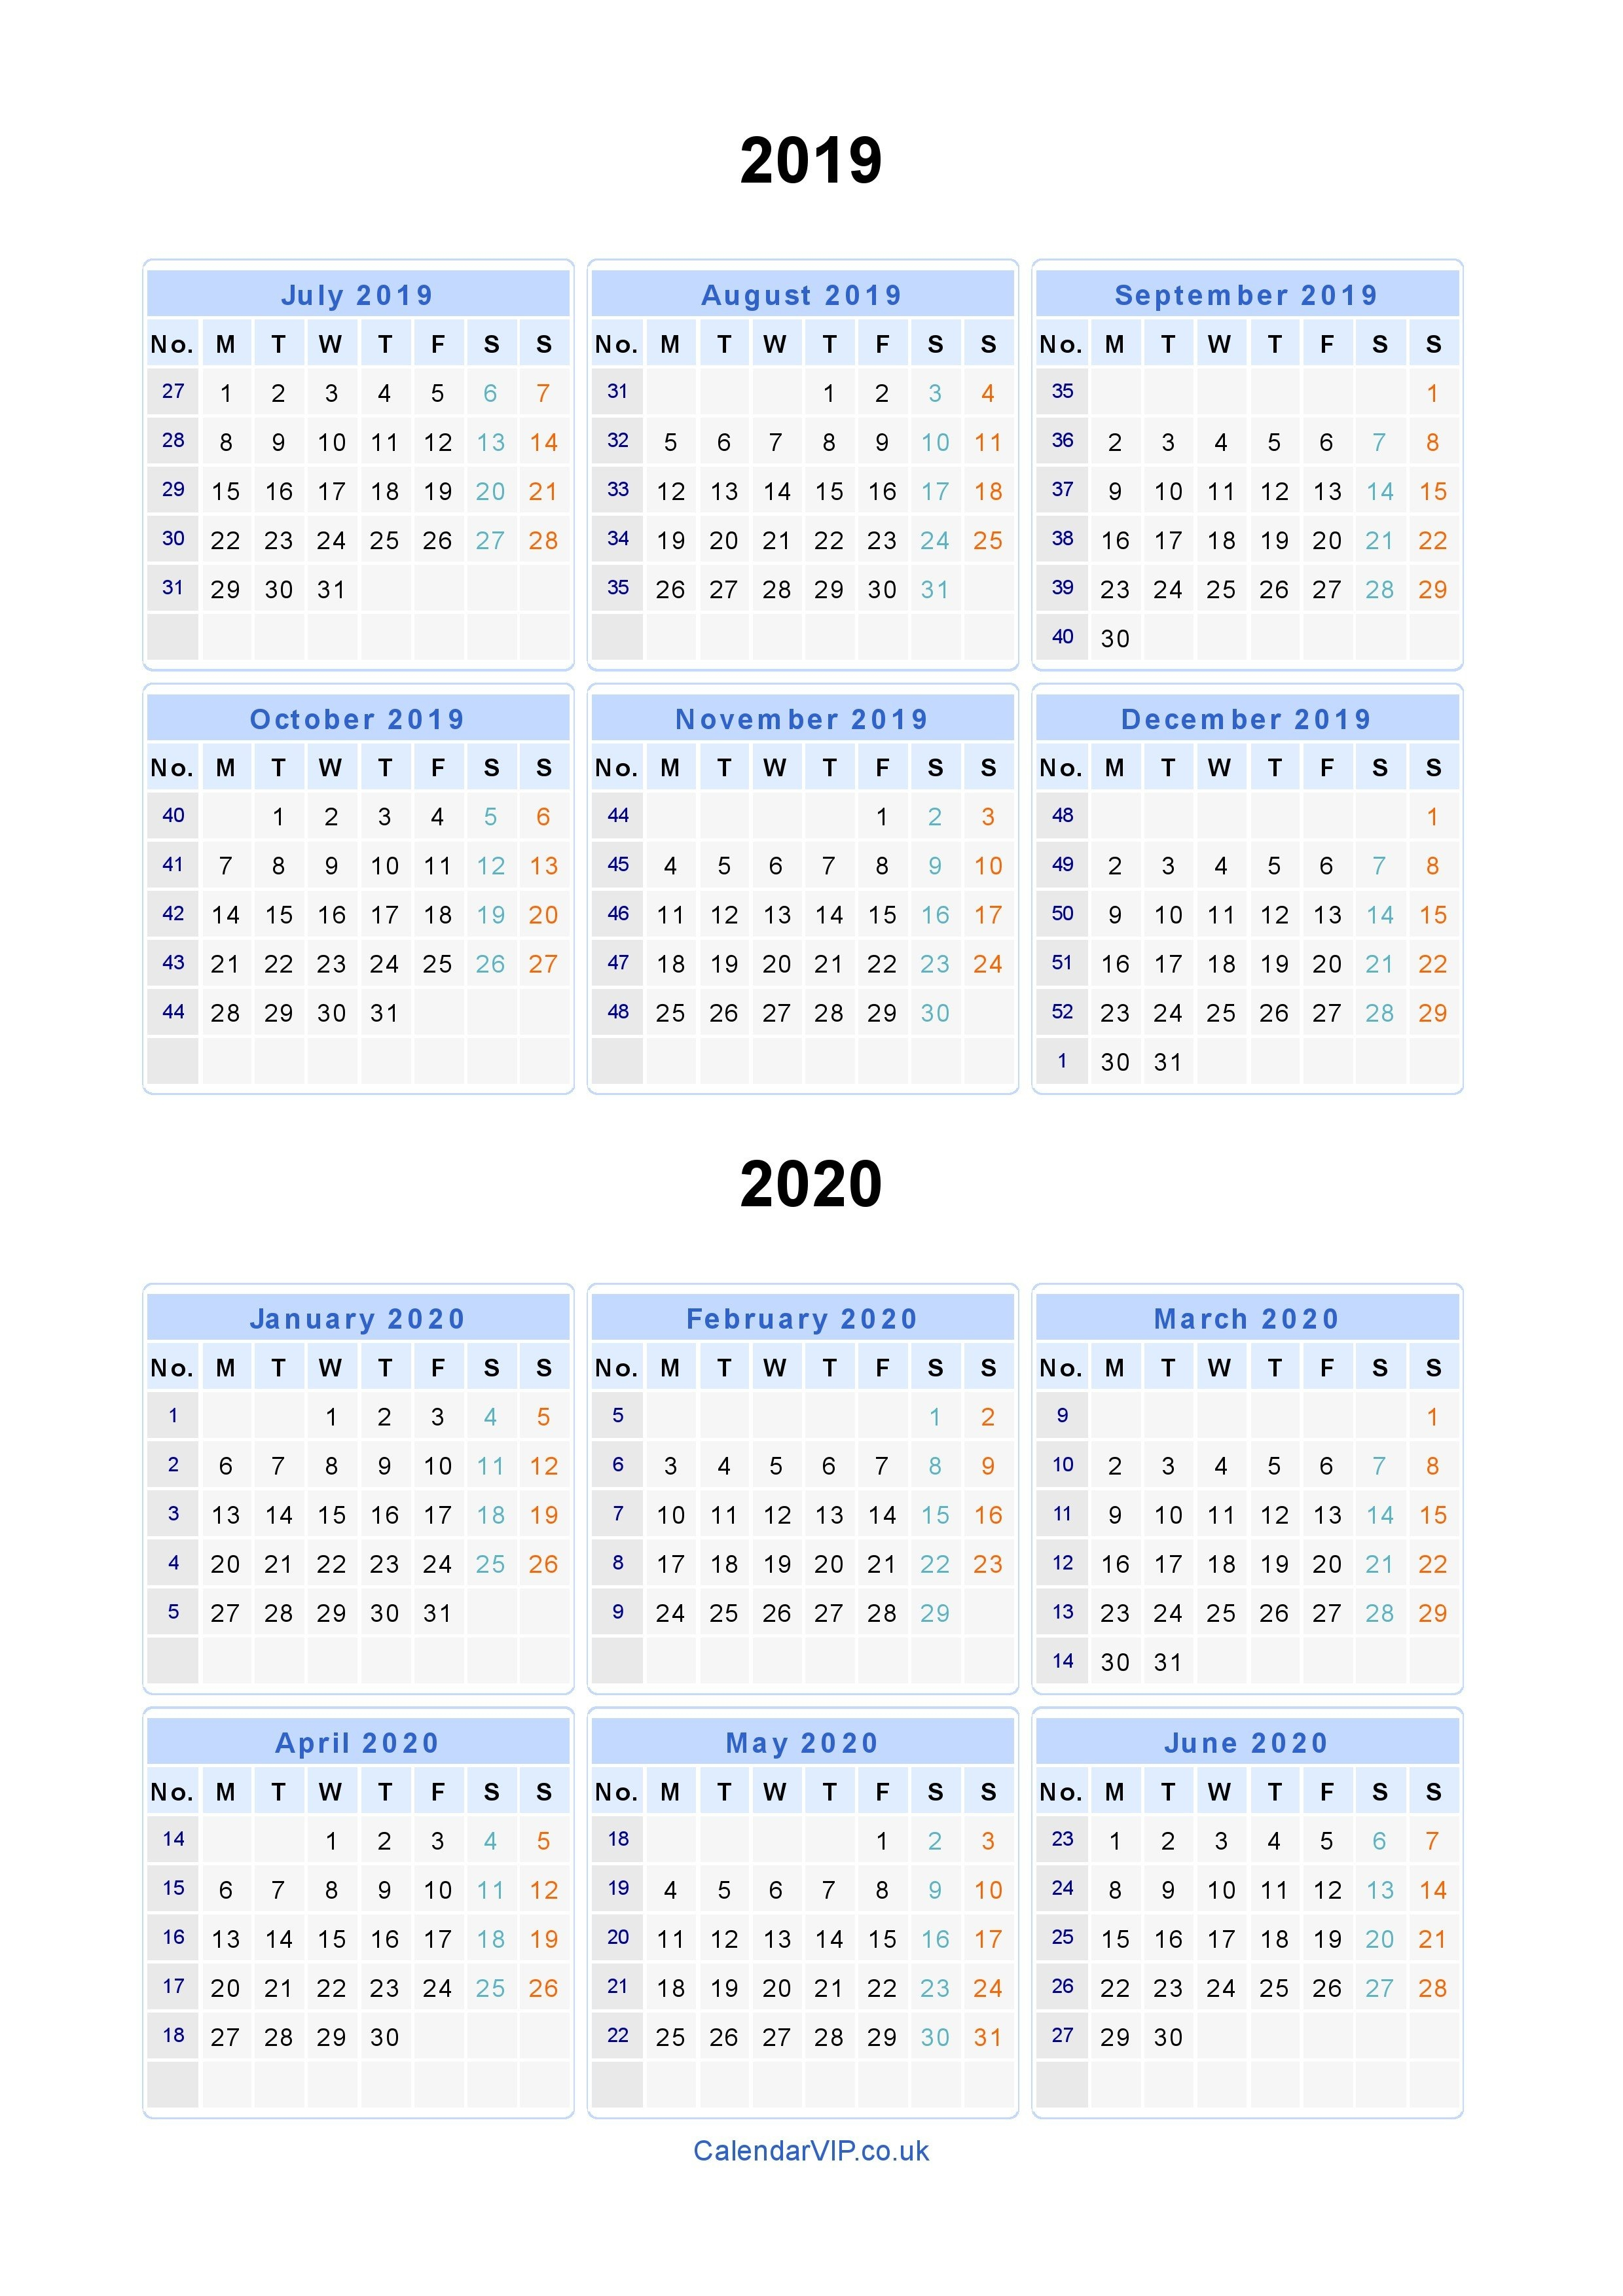 Split Year Calendars 2019 2020 - Calendar From July 2019 To June 2020 Calendar 2019 To 2020